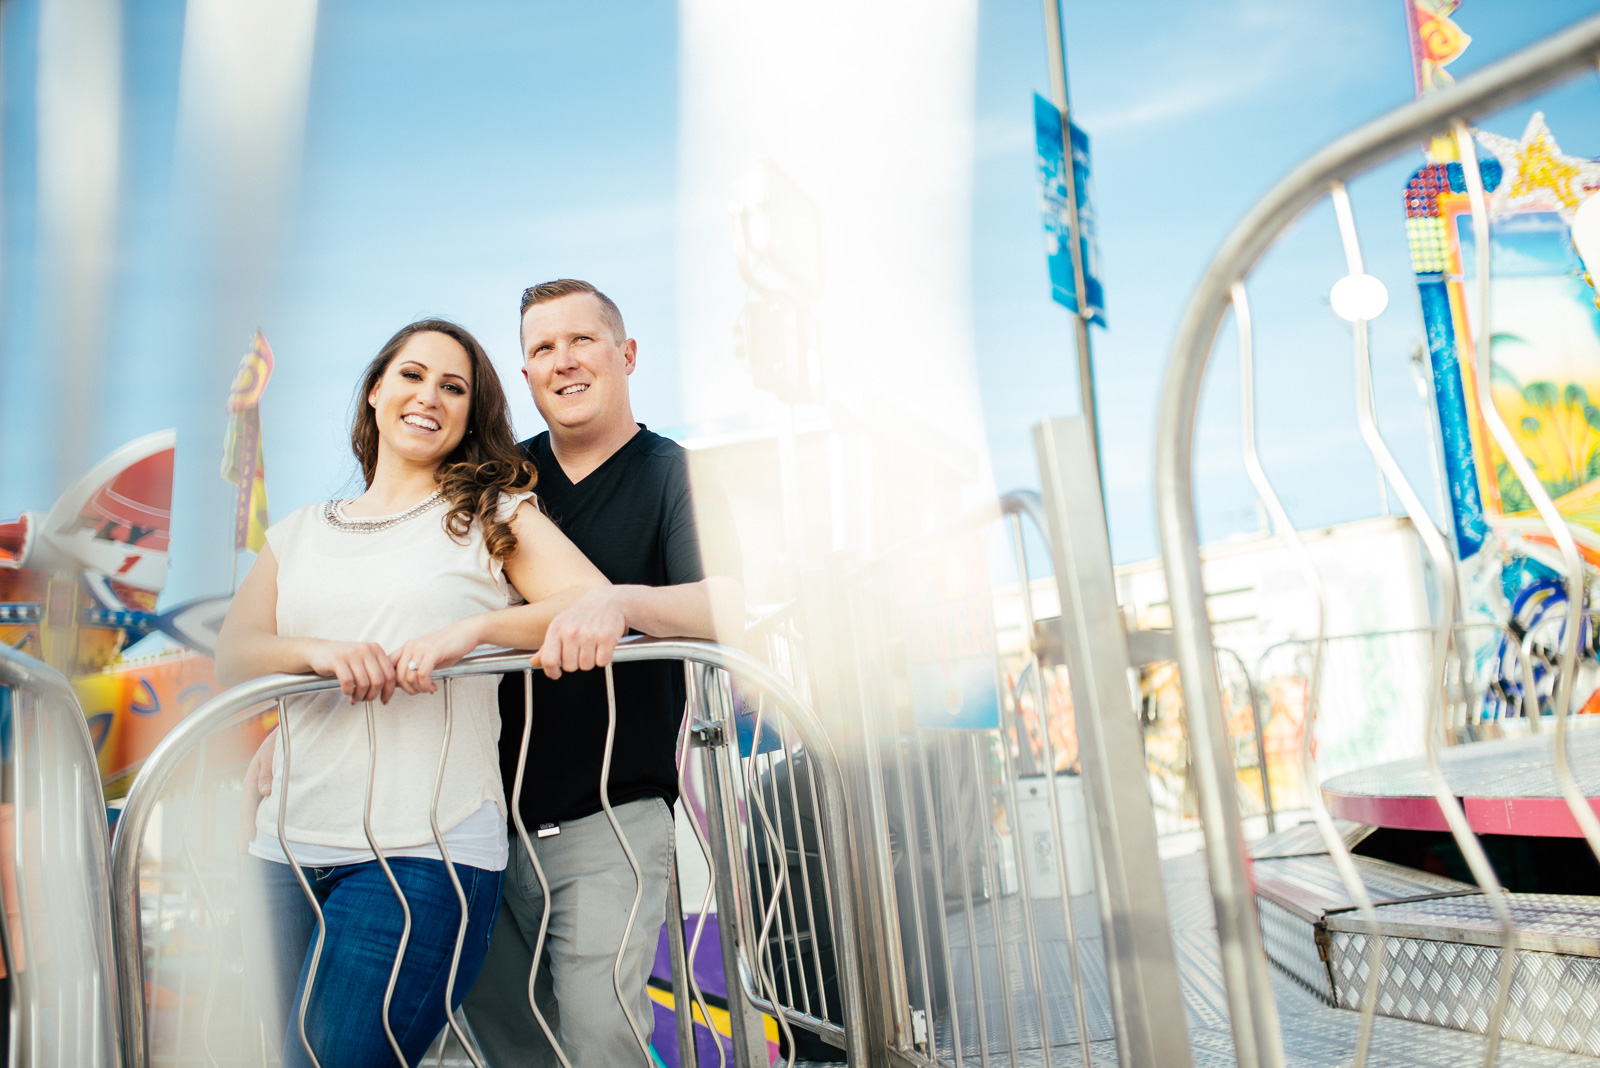 ^ Tanya & John were one of our most fun-loving couples this year, so it was only suiting that we did their engagement photos at an amusement park! The story behind this image is that the amusement park we chose was a very small mobile park in the parking lot of a mall, and PACKED with people! It was challenging to find angles that didn't show the mall or parking lot but still had a lot of colour and fun. This was my favourite from their shoot, and one of my faves of the year overall.